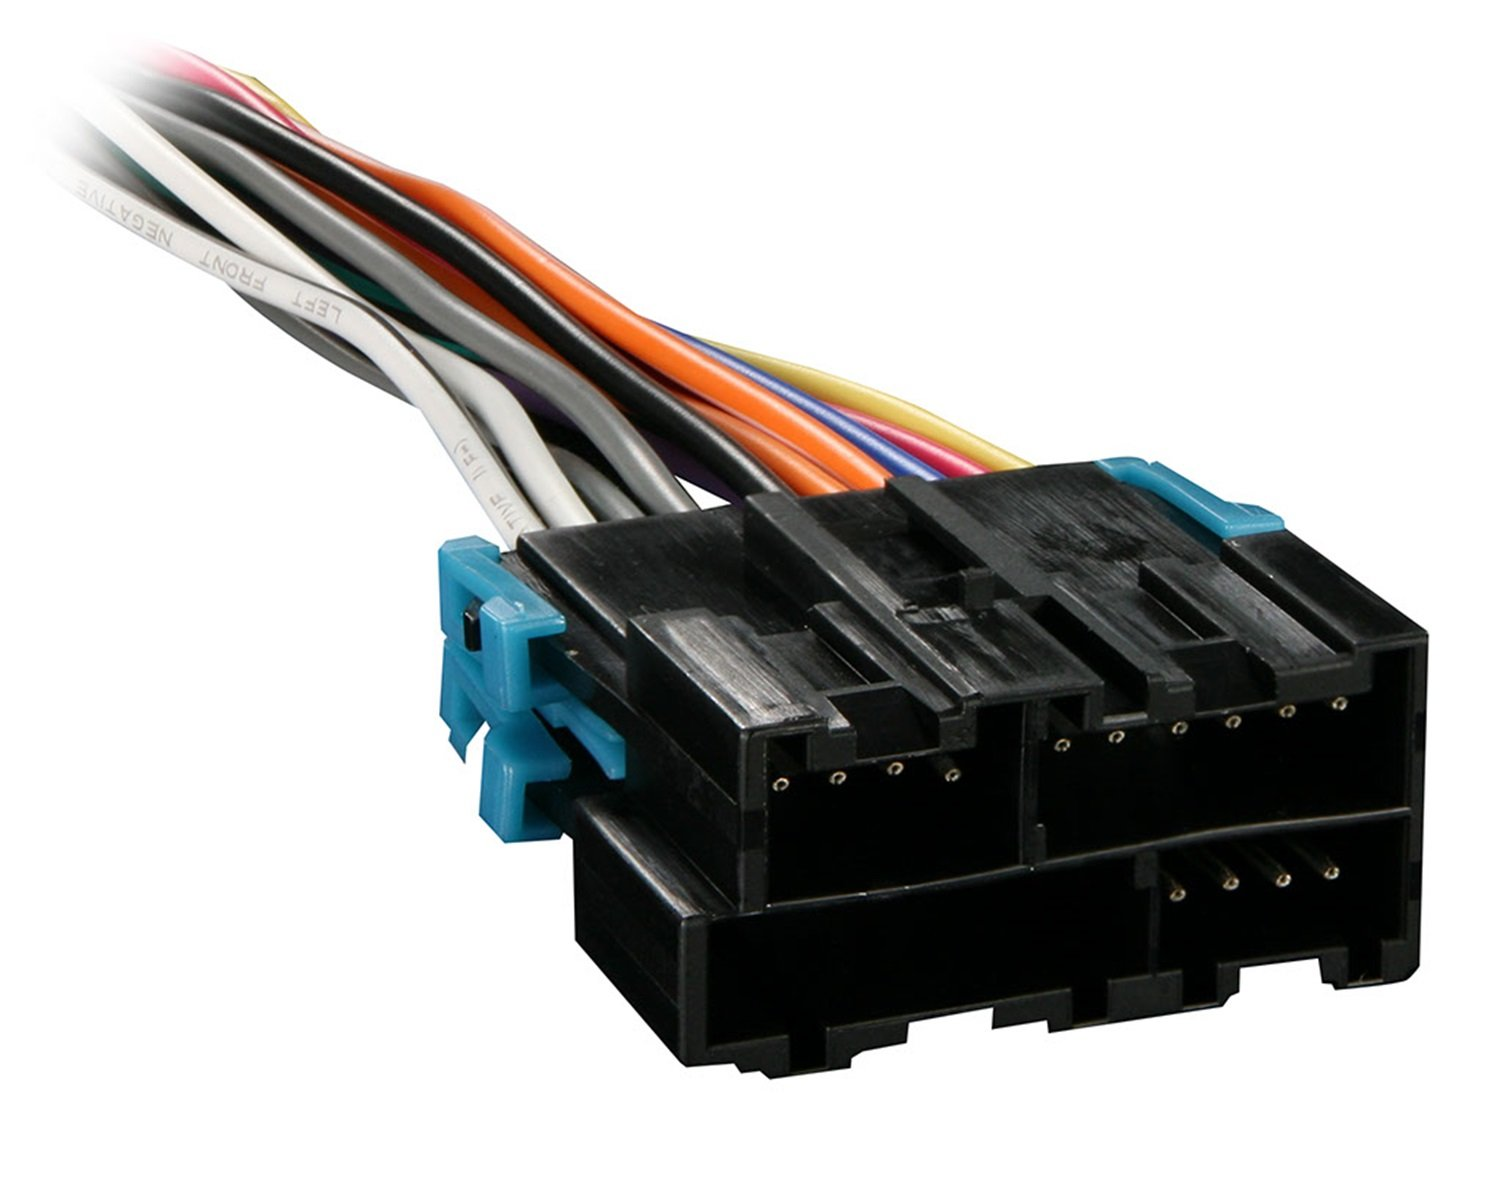 61 CwjZt1hL._SL1500_ radio wiring harnesses amazon com universal radio wiring harness at aneh.co